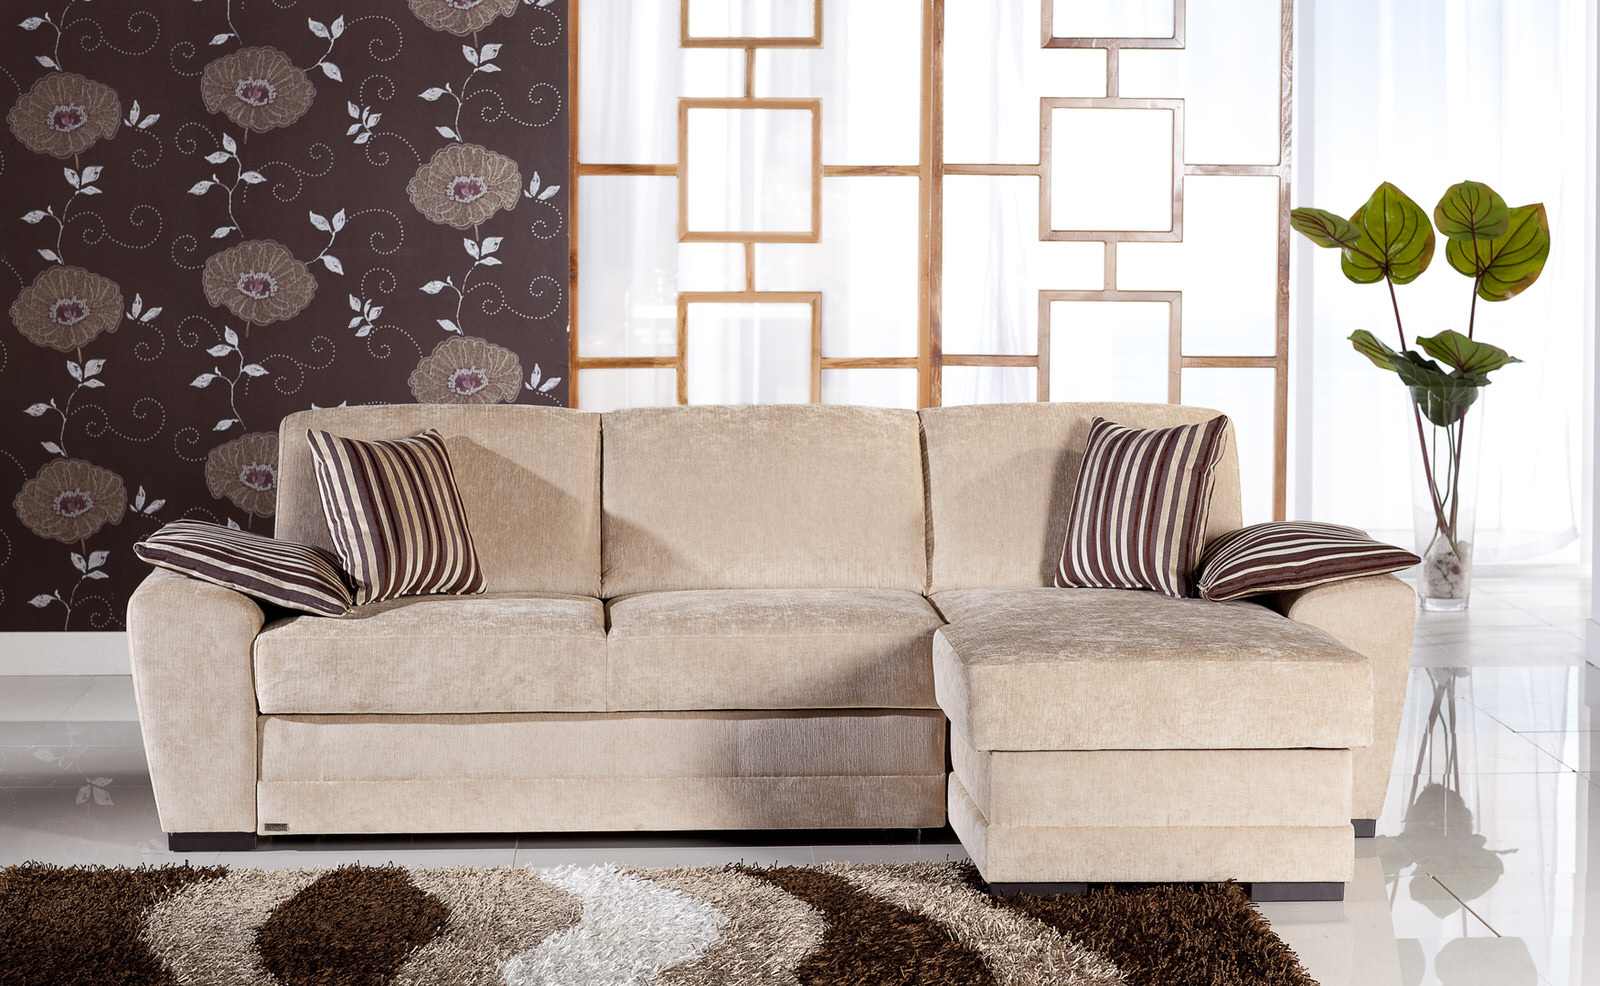 Awesome Cross Yuky Cream Sectional Sofa By Istikbal Furniture Short Links Chair Design For Home Short Linksinfo